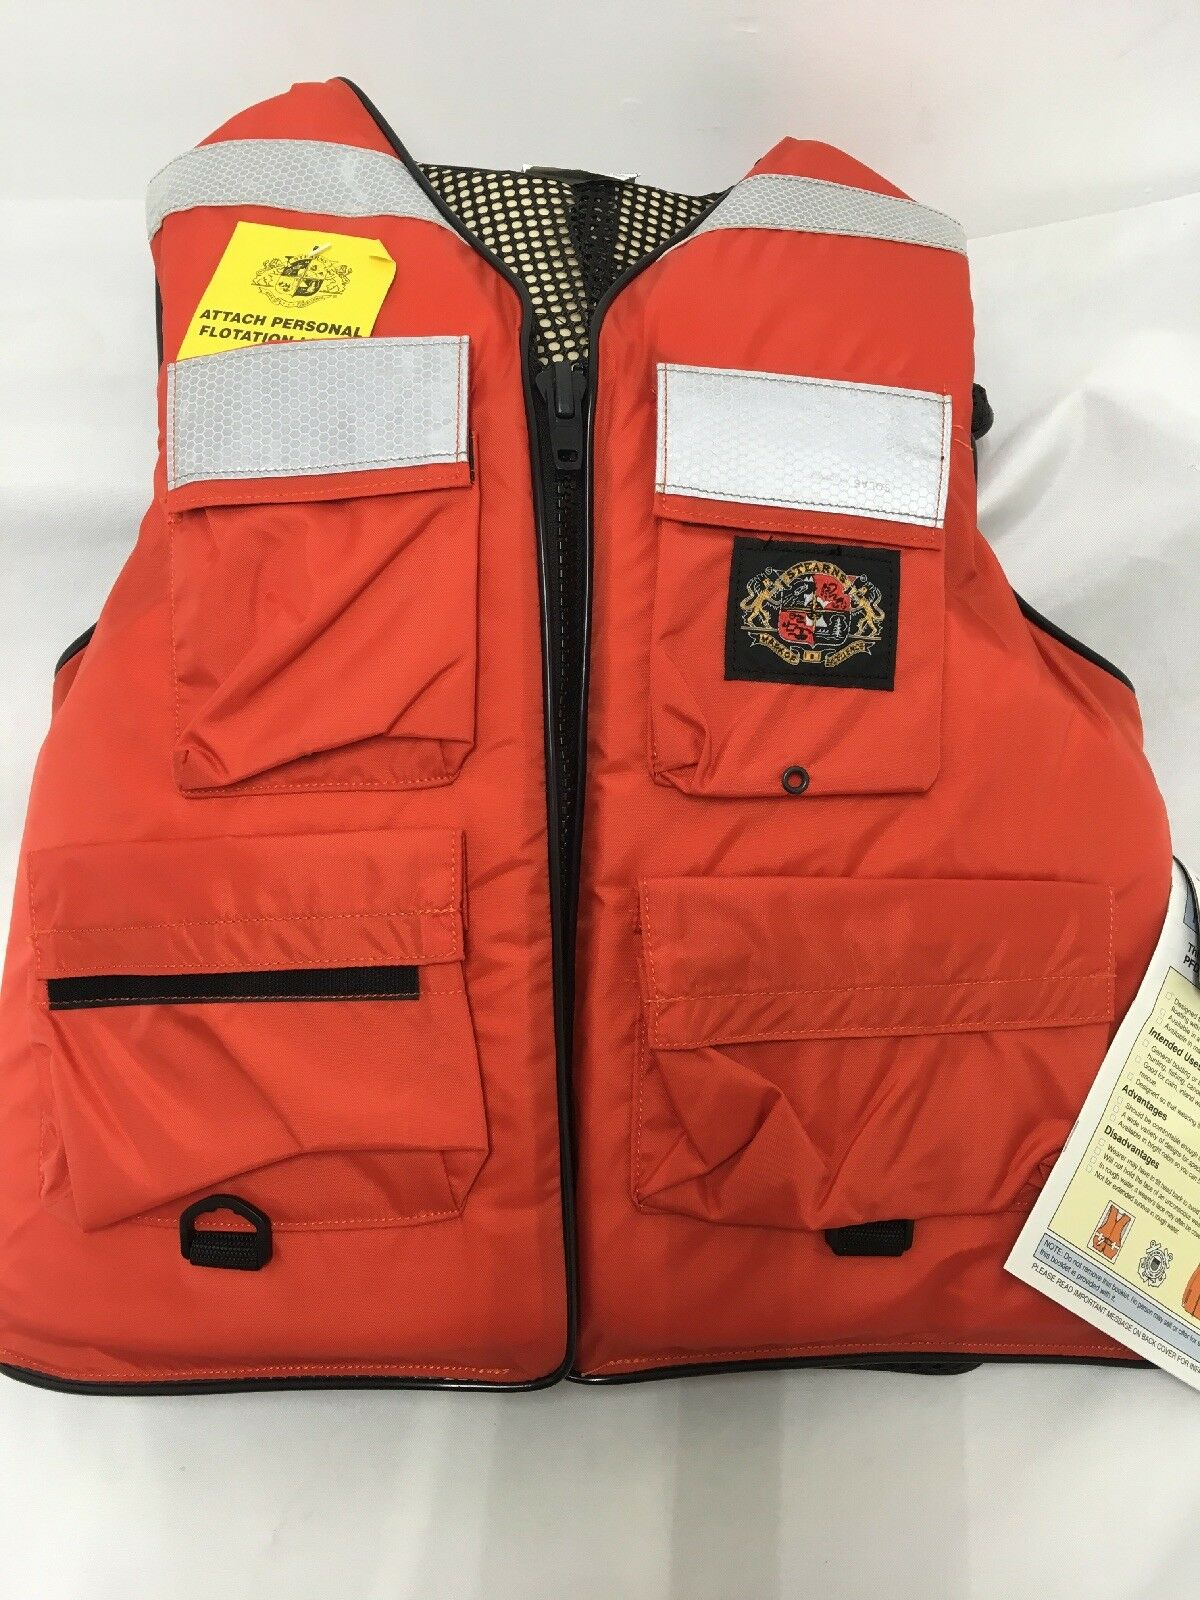 STEARNS TYPE IIII ADULT SMALL  orange PERSONAL FLOATATION DEVICE VEST MODEL I465  quality assurance